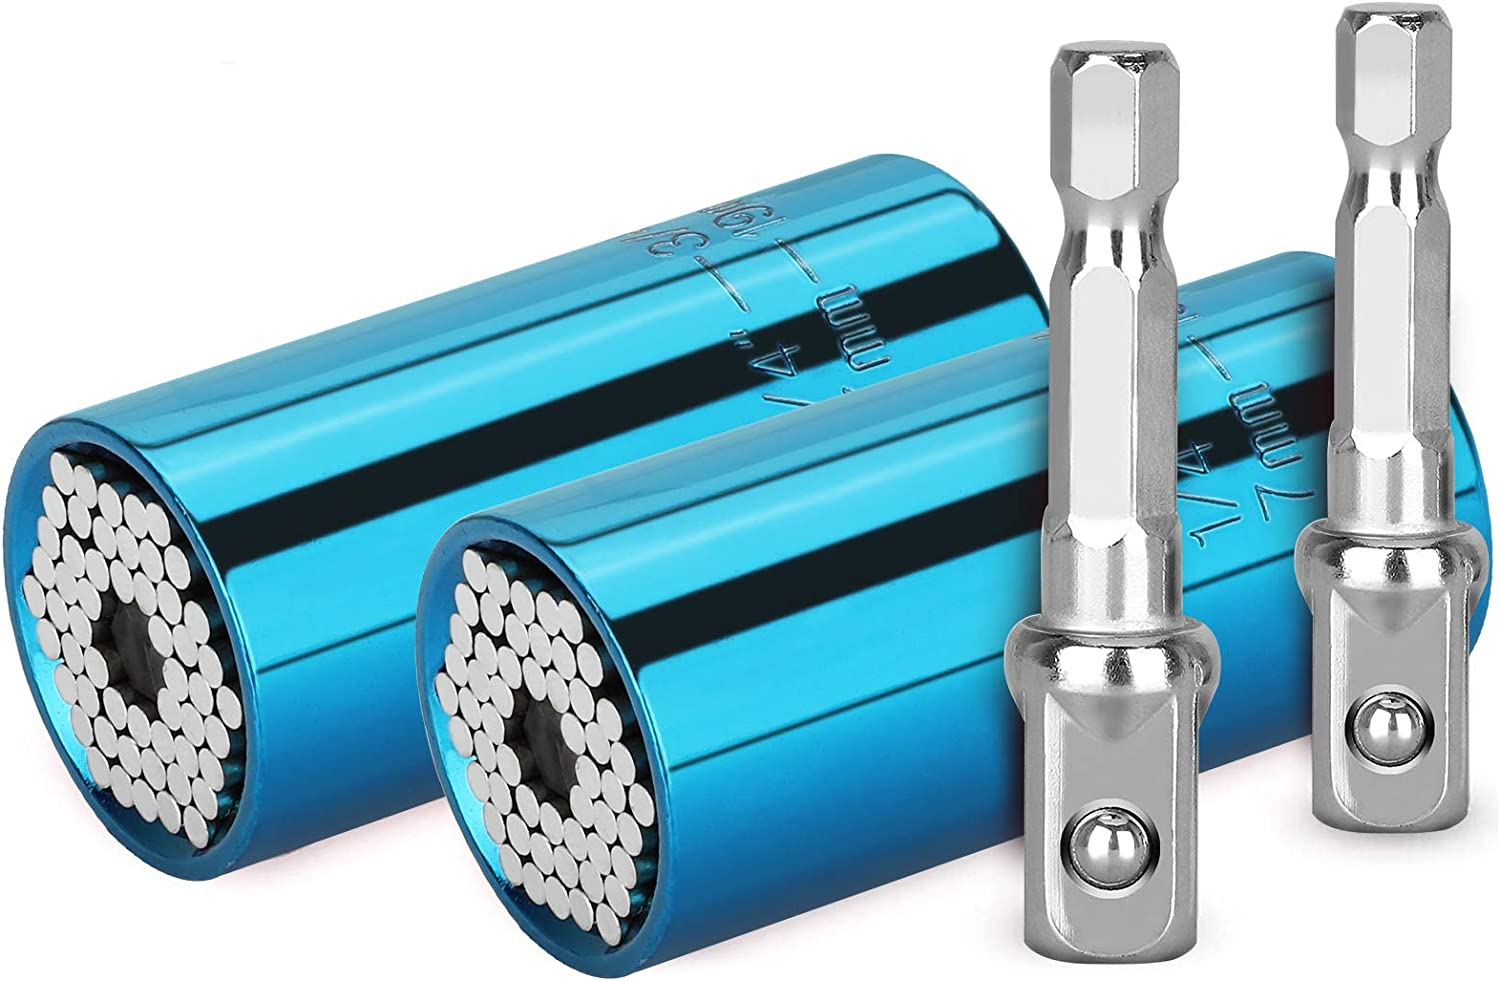 4 Pack Universal Socket Gifts Wrench Men Max 80% OFF Long-awaited G for